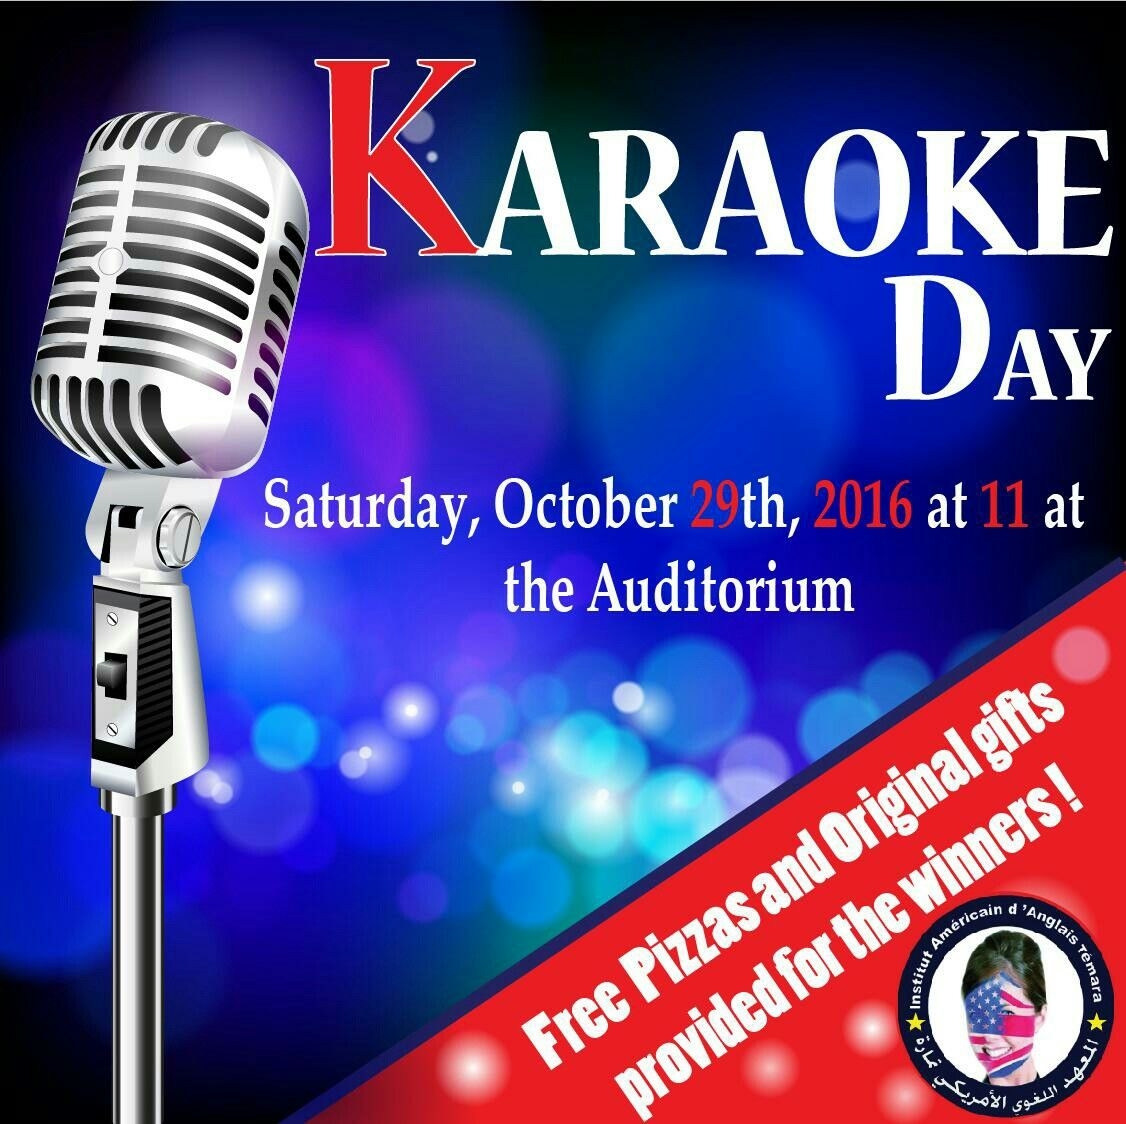 Join Us Our Karaoke Day At The American Center Temara Live Music Performance On Mic Drinks Prizes Celebrities And A Lot More Karaoke Temara Original Gifts